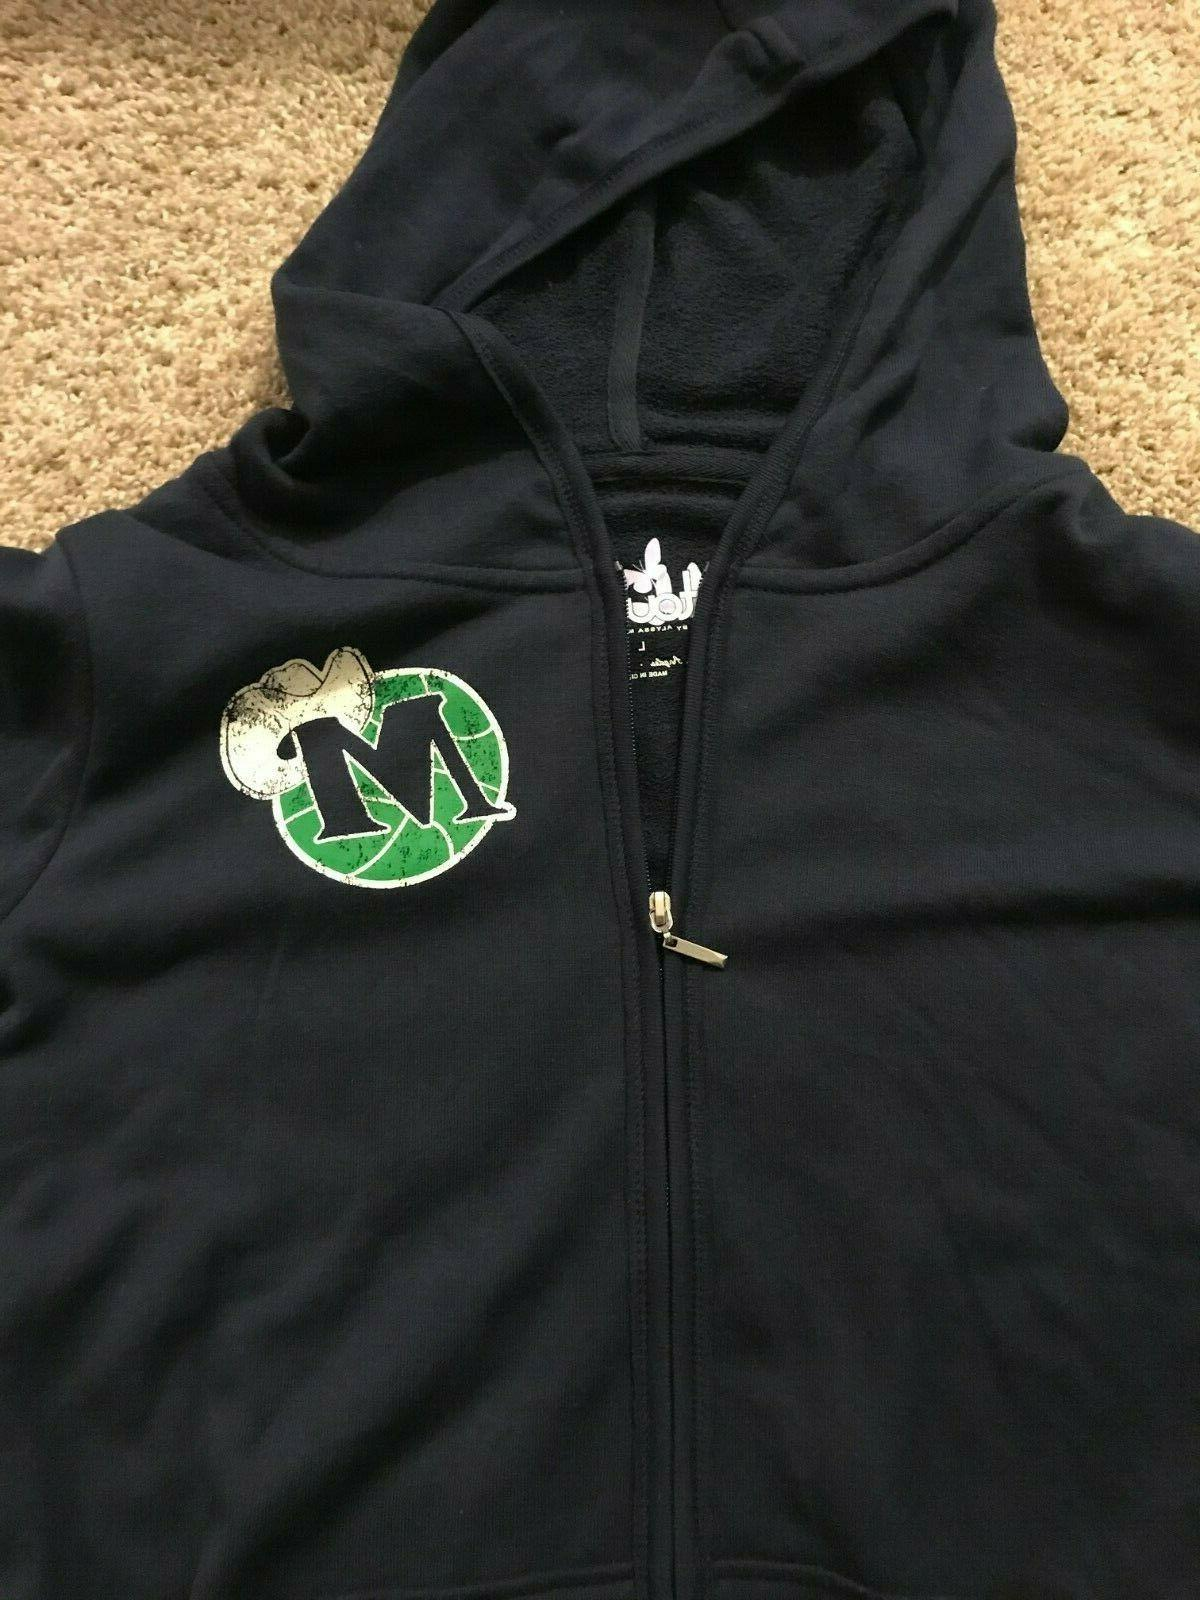 TOUCH BY DALLAS MAVERICKS WOMENS JACKET SIZE LARGE